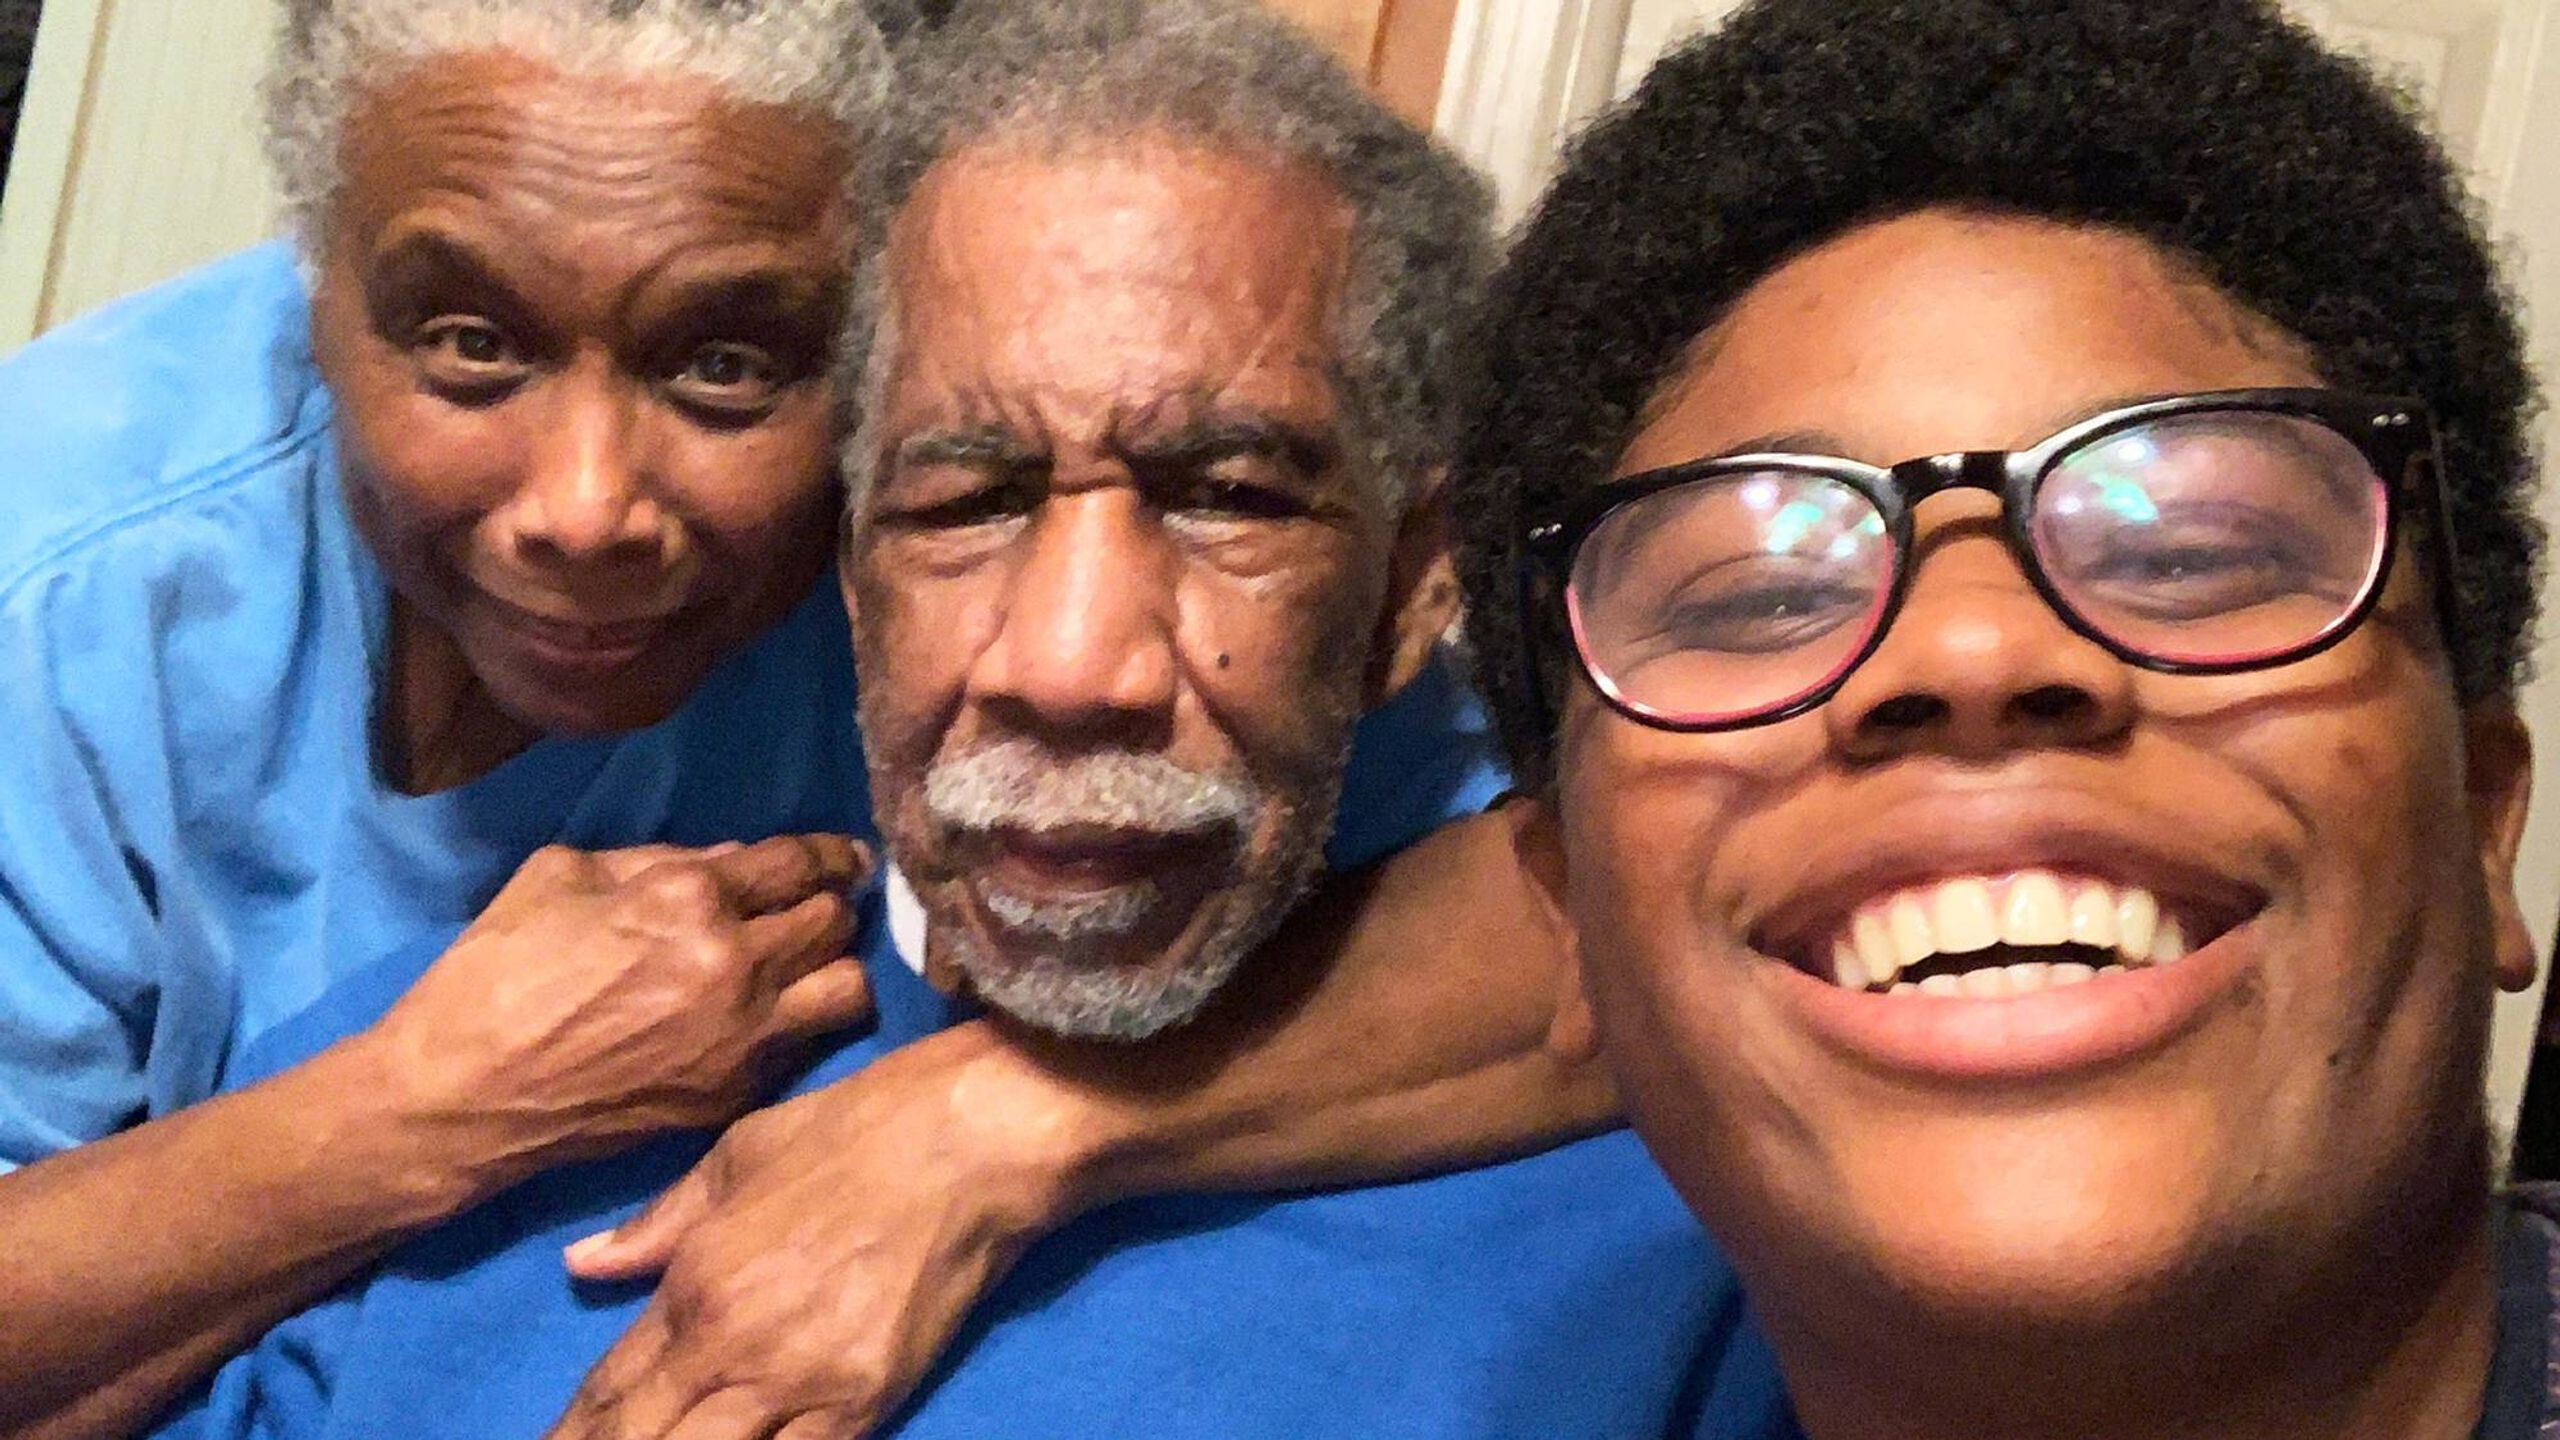 An intergenerational selfie of Lumiere Rostick and his grandparents. Rewire PBS Love Caregiver Lumiere Rostick